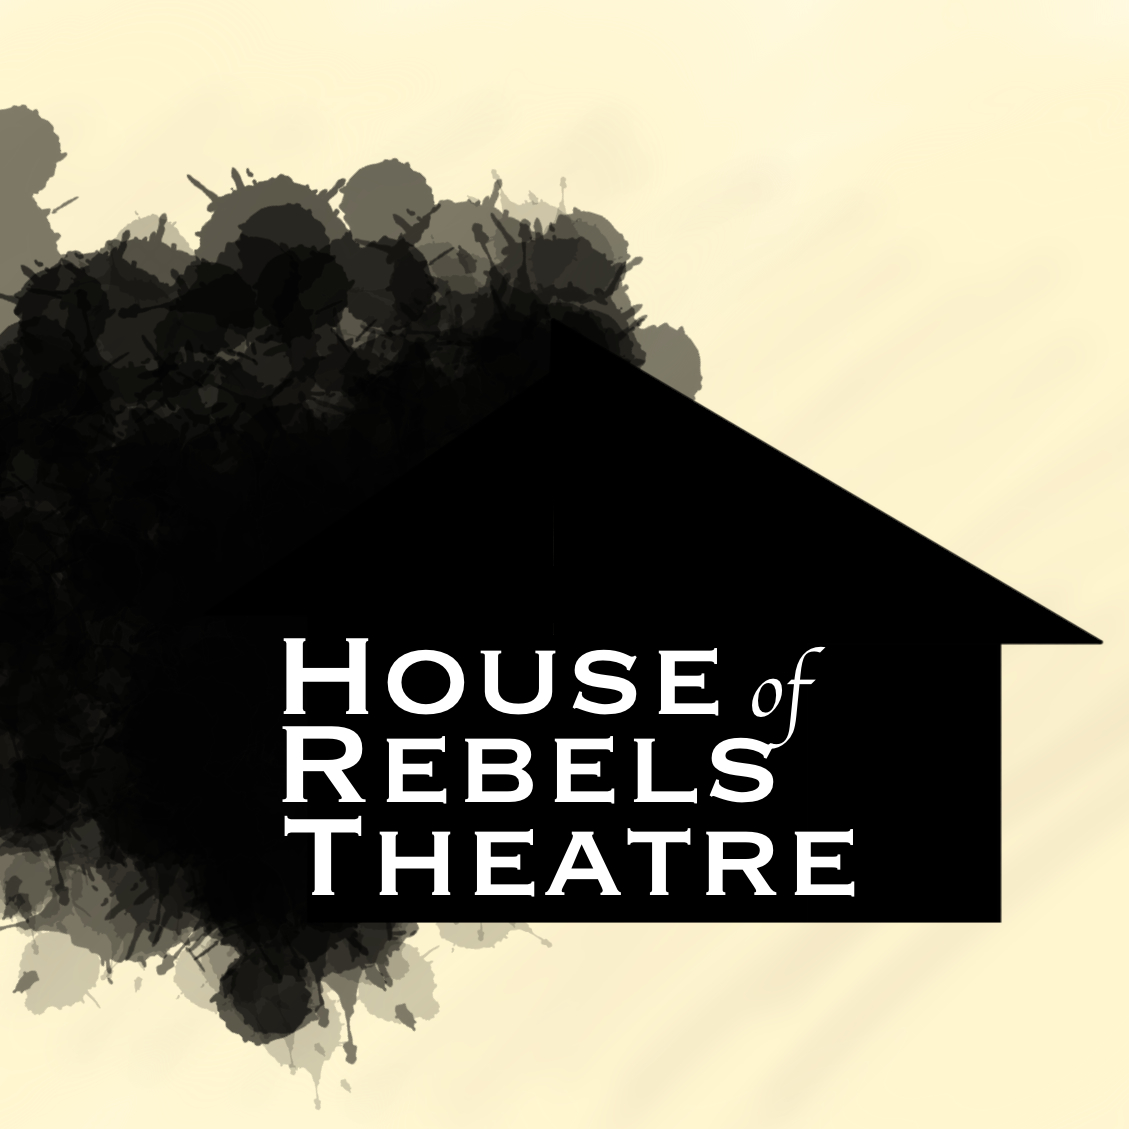 House of Rebels Theatre